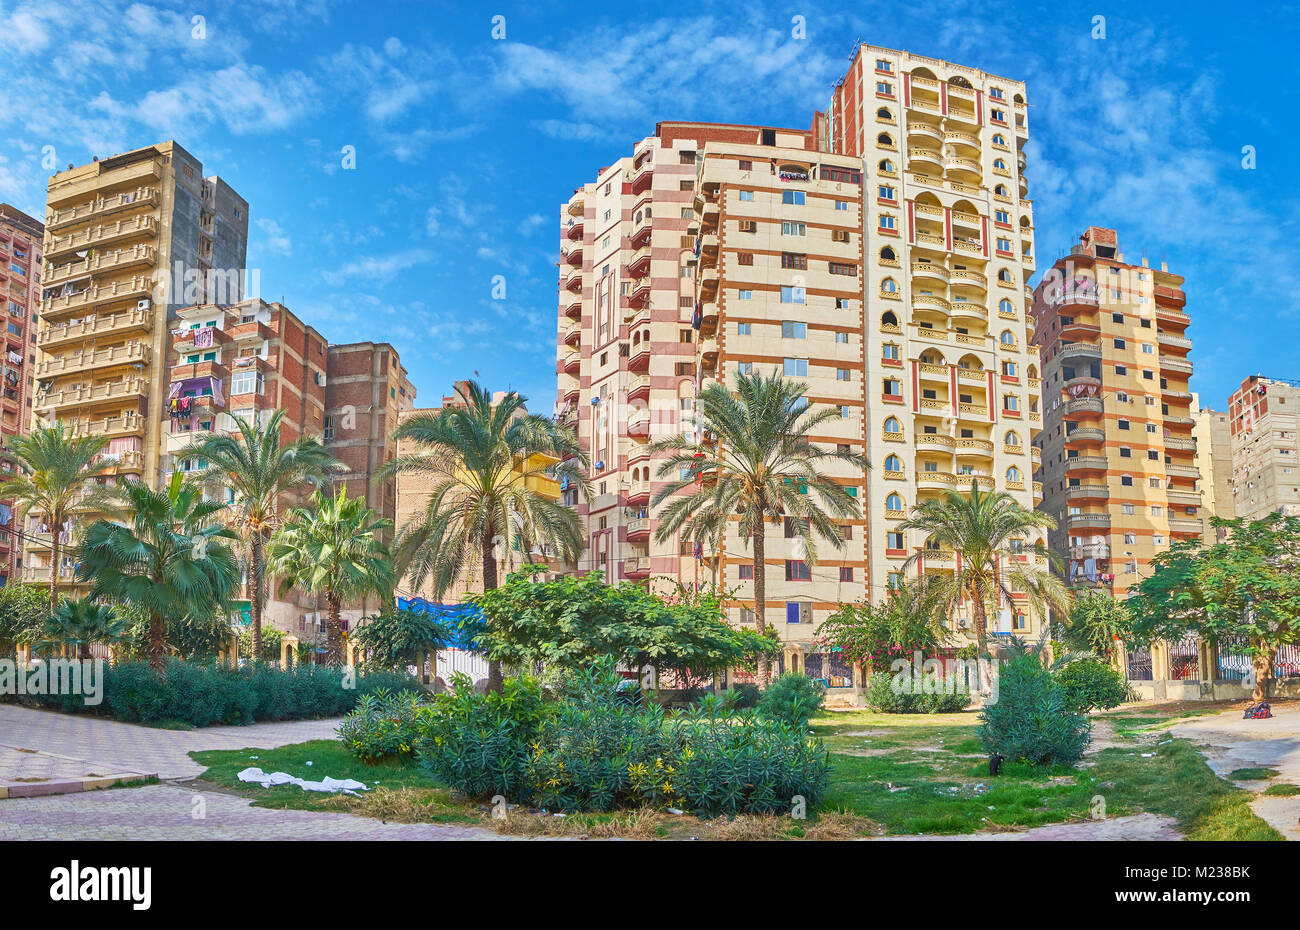 The scenic green garden with tall palms in front of the multistory buildings of El Gomrok neighborhood, Alexandria, - Stock Image